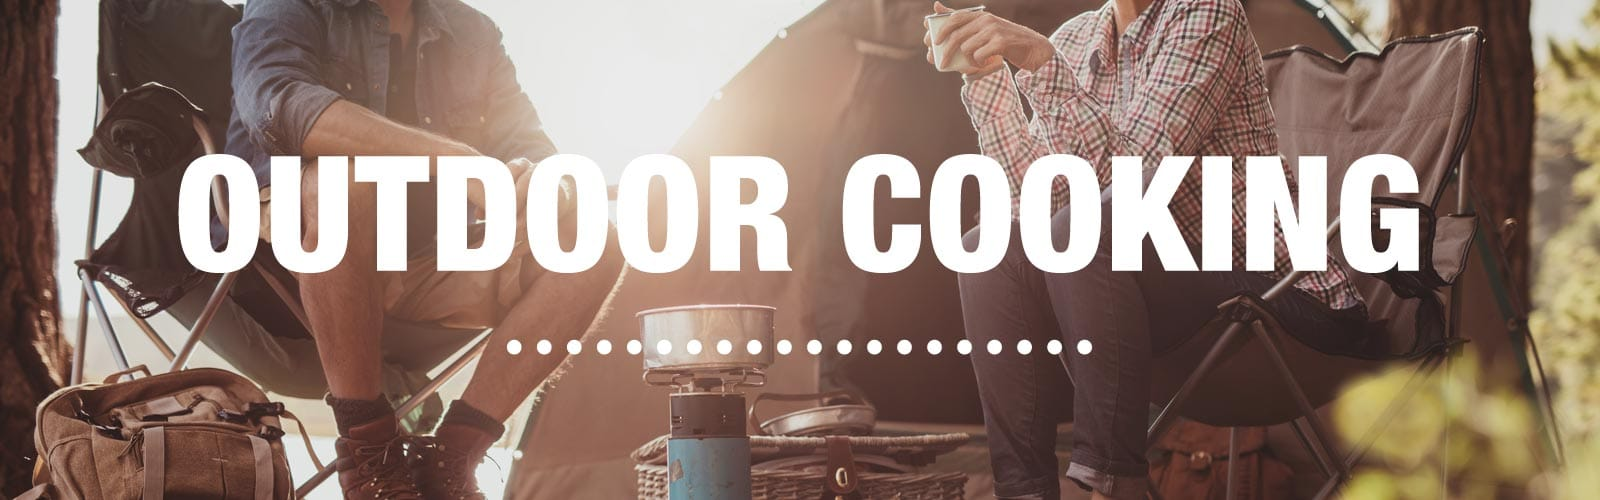 The Outdoor Cooking Guide